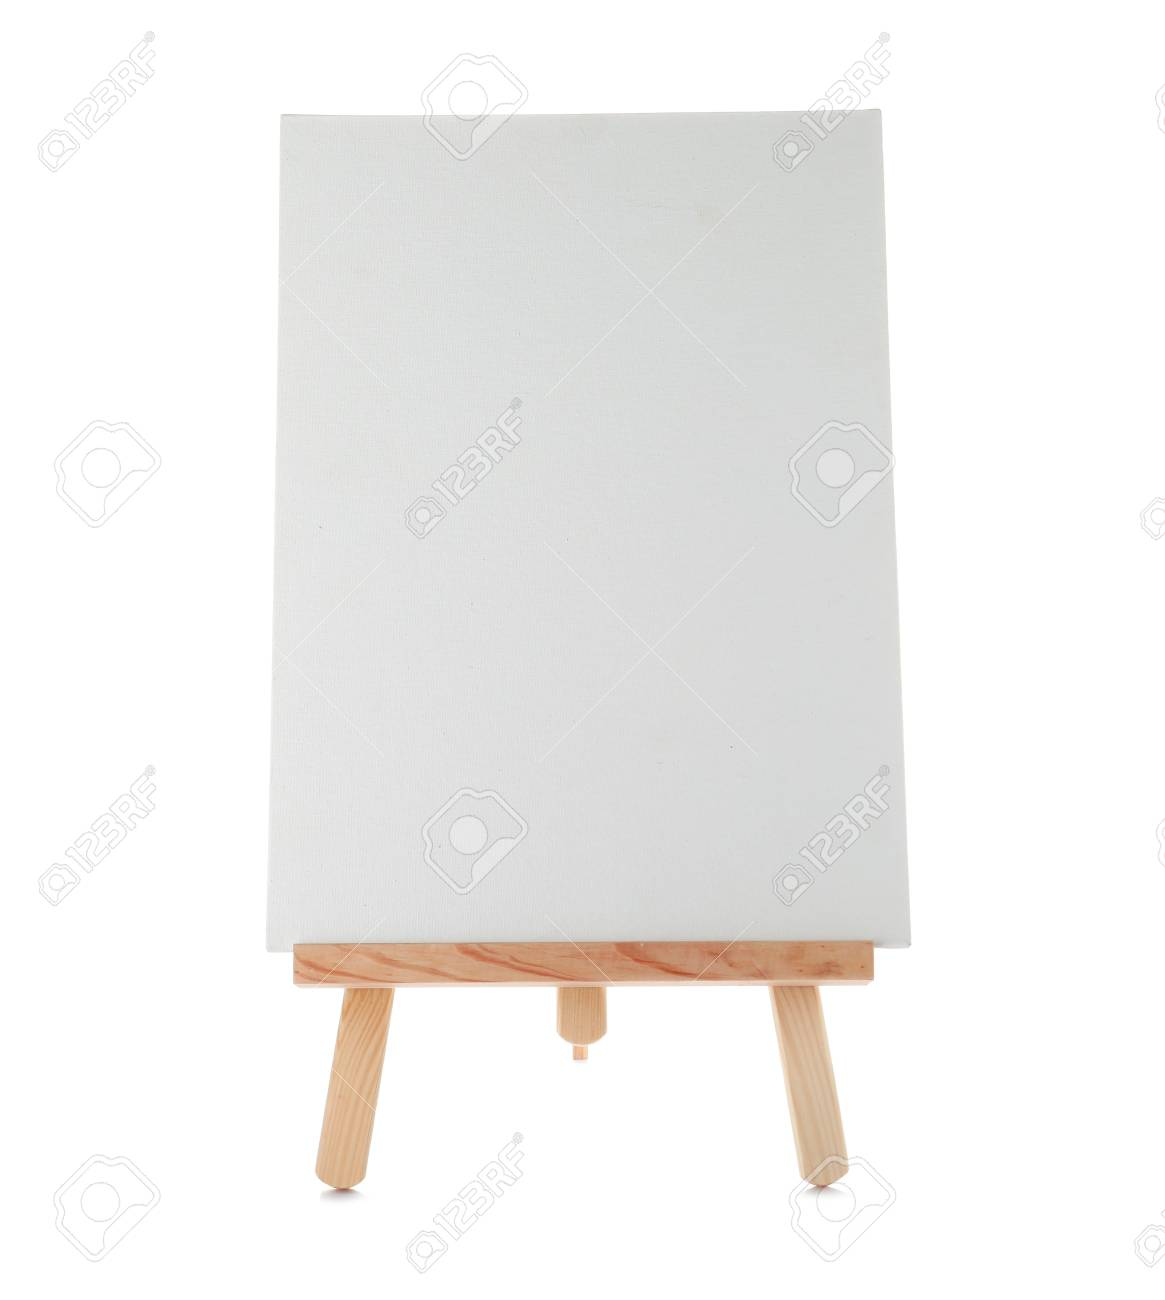 wooden easel with blank